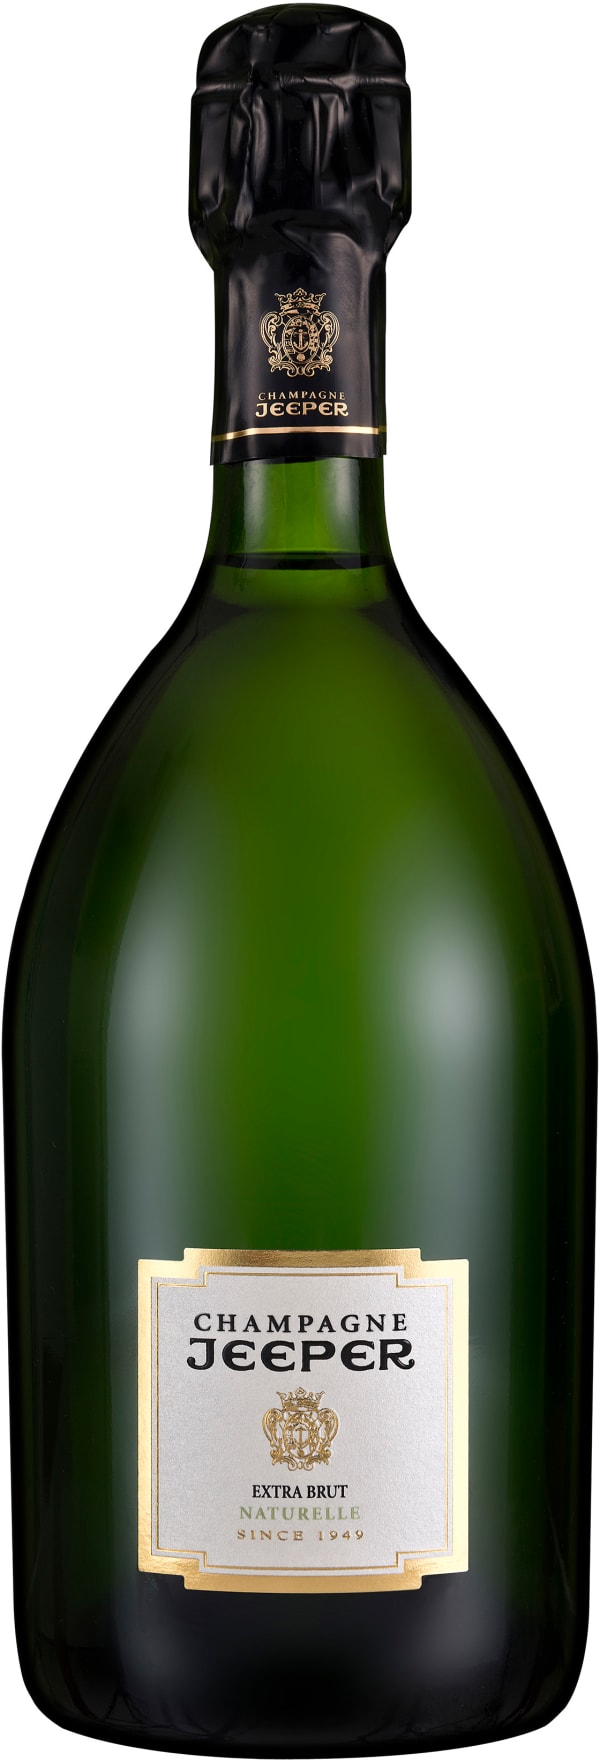 Jeeper Naturelle Champagne Extra Brut